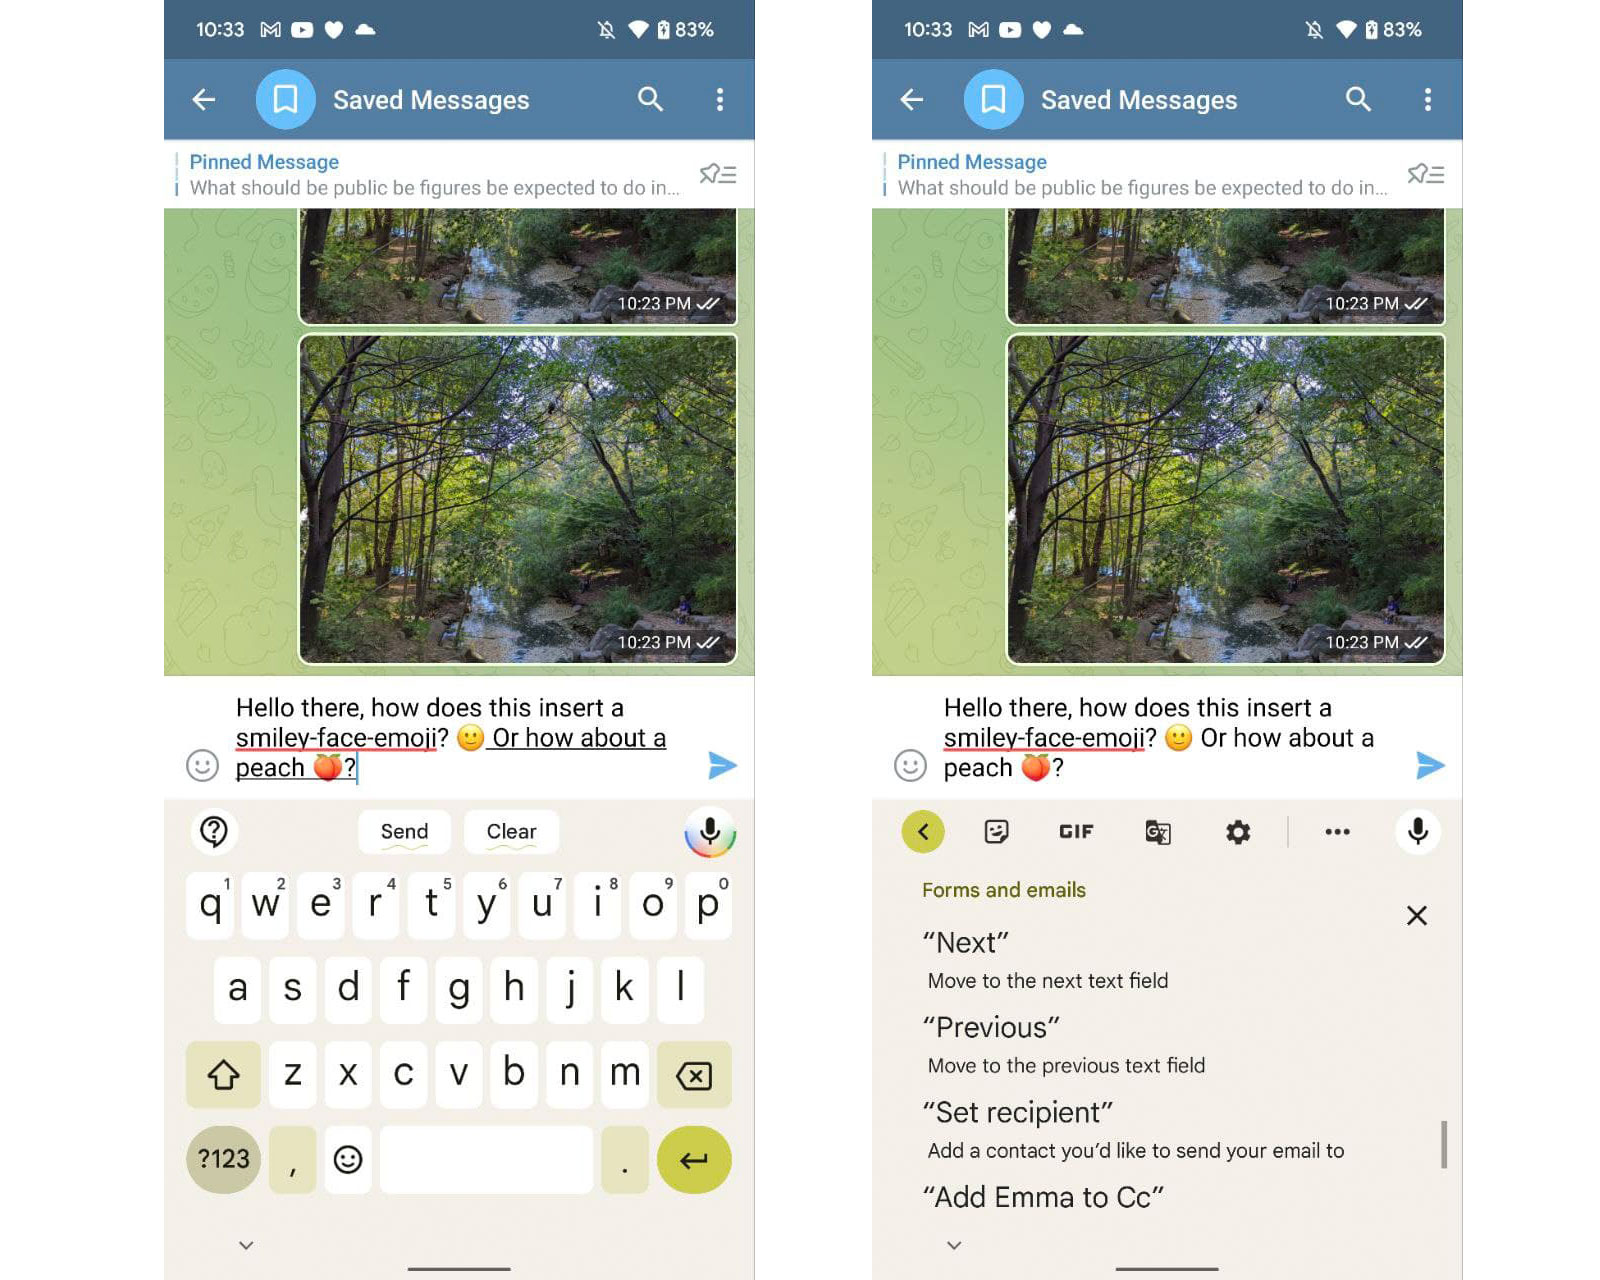 Screenshots showing examples of the new voice keyboard on the Pixel 6, as well as the help page showing more commands that can be used, like